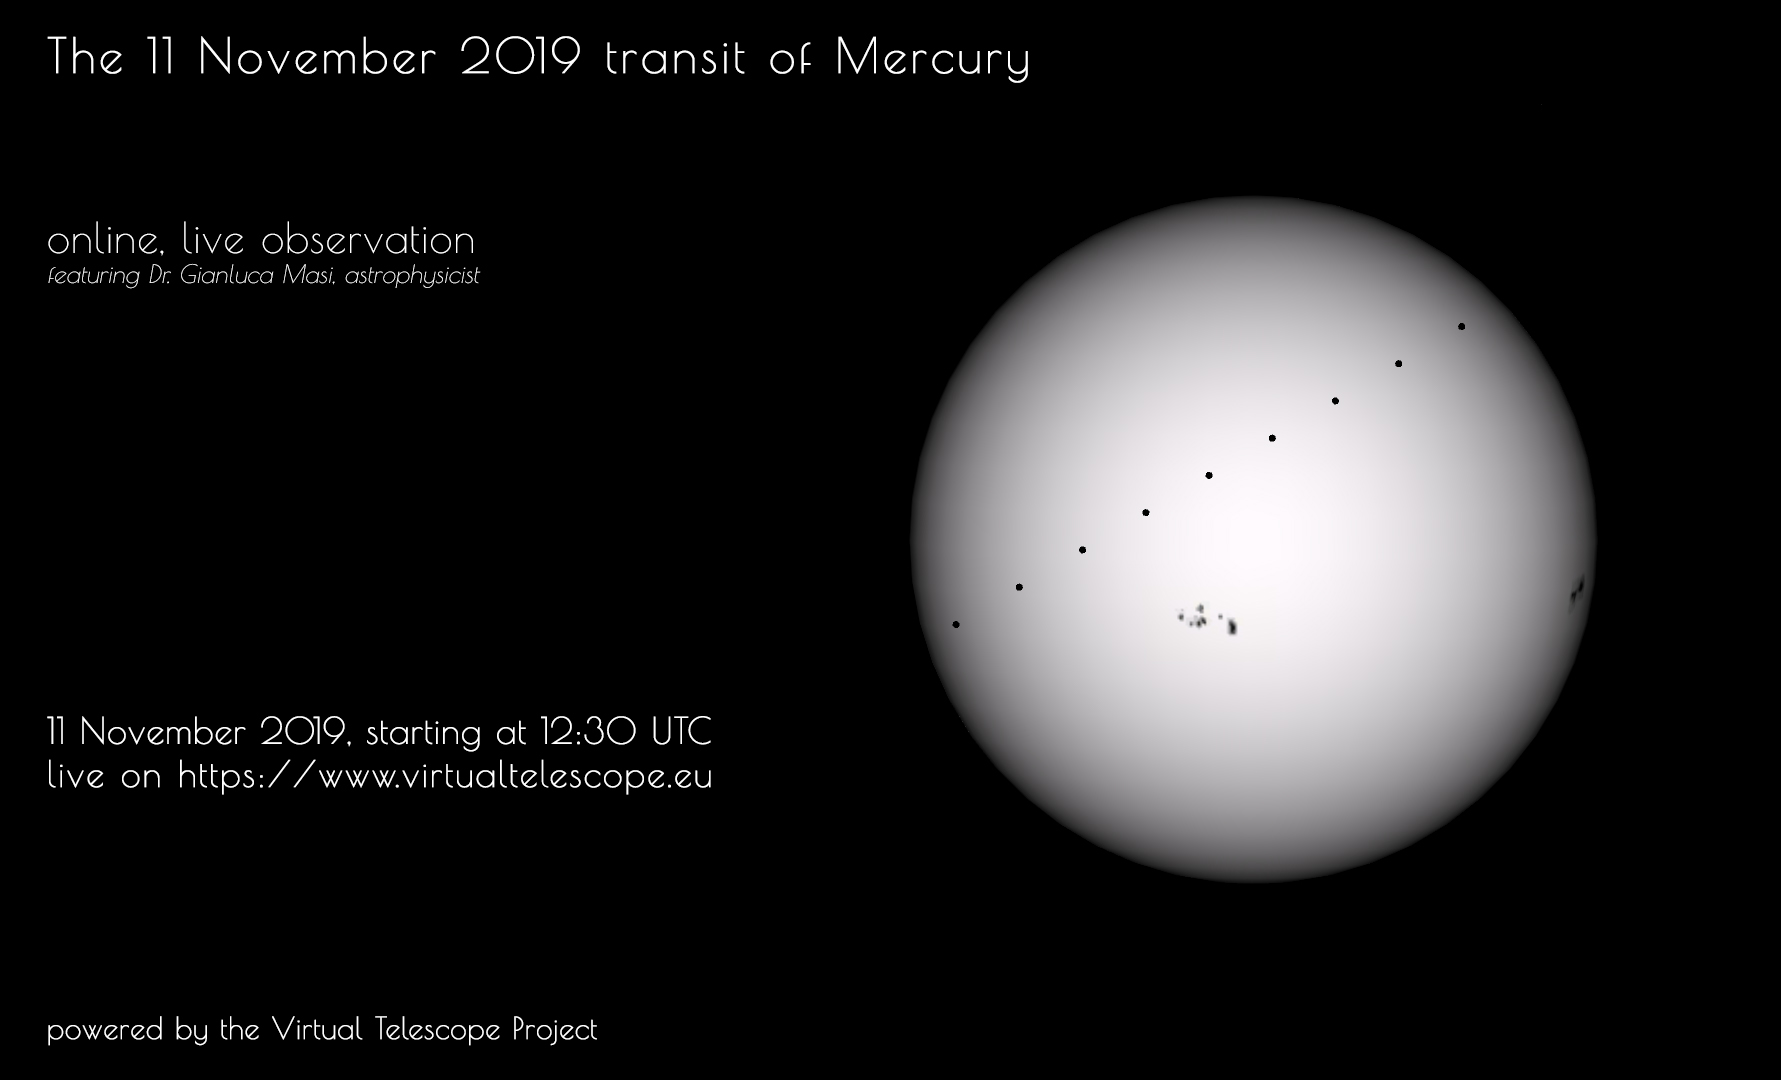 The 11 Nov. 2019 transit of Mercury : online observing session - poster of the event